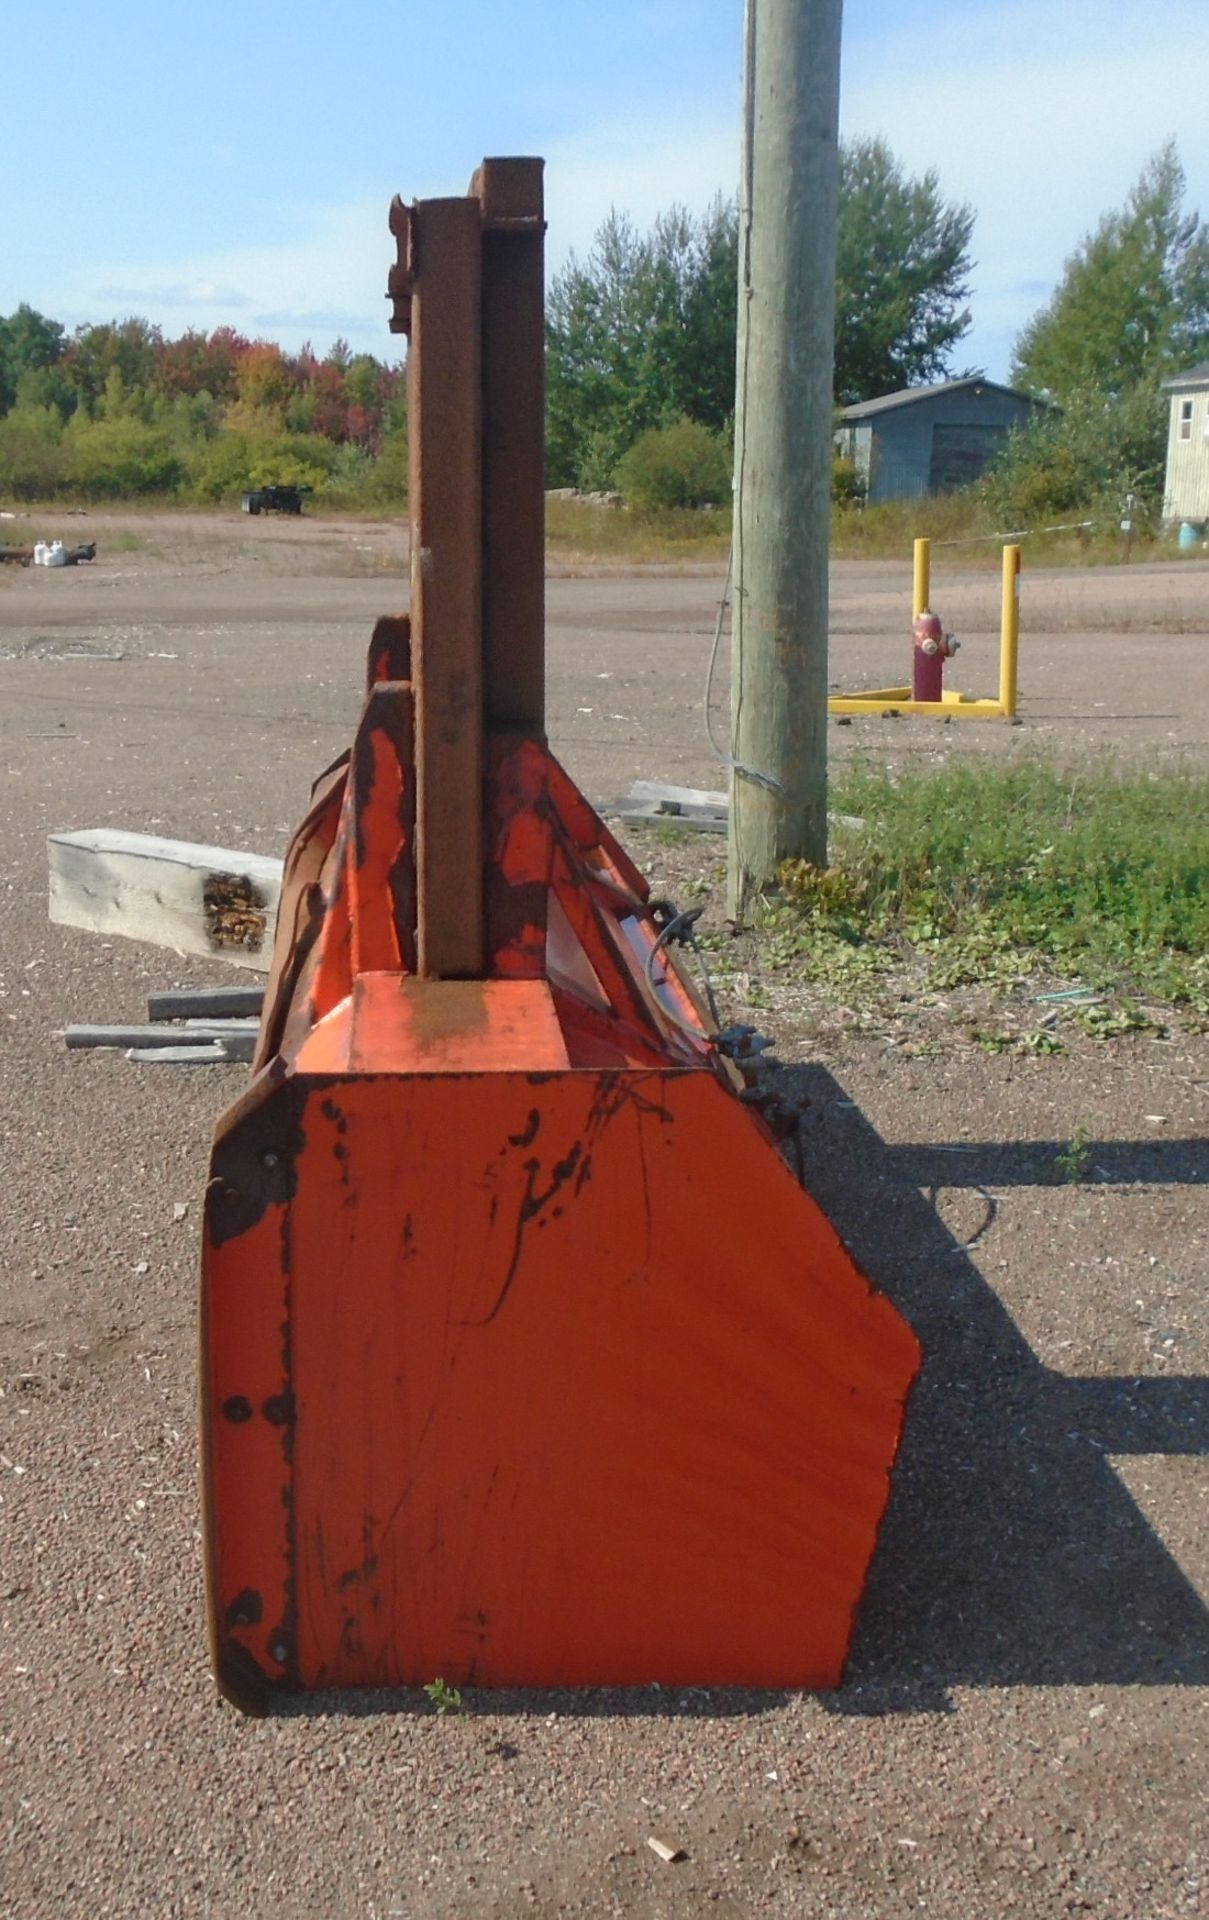 MFG UNKNOWN 10' BOX PLOW ATTACHMENT - Image 2 of 2